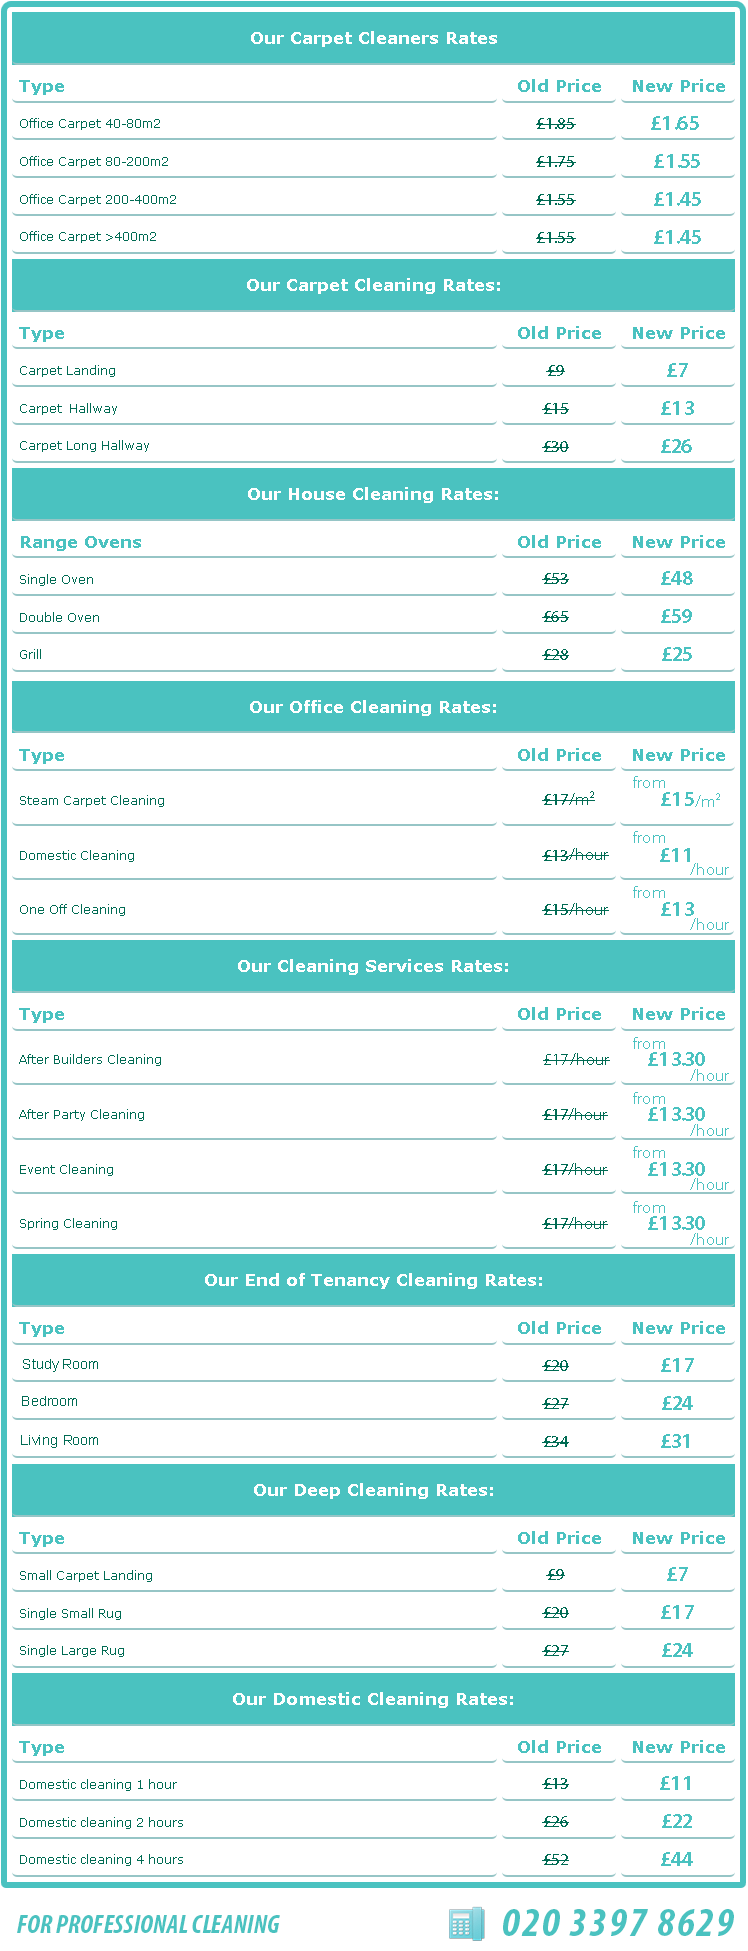 Prices for essential cleaning services in London